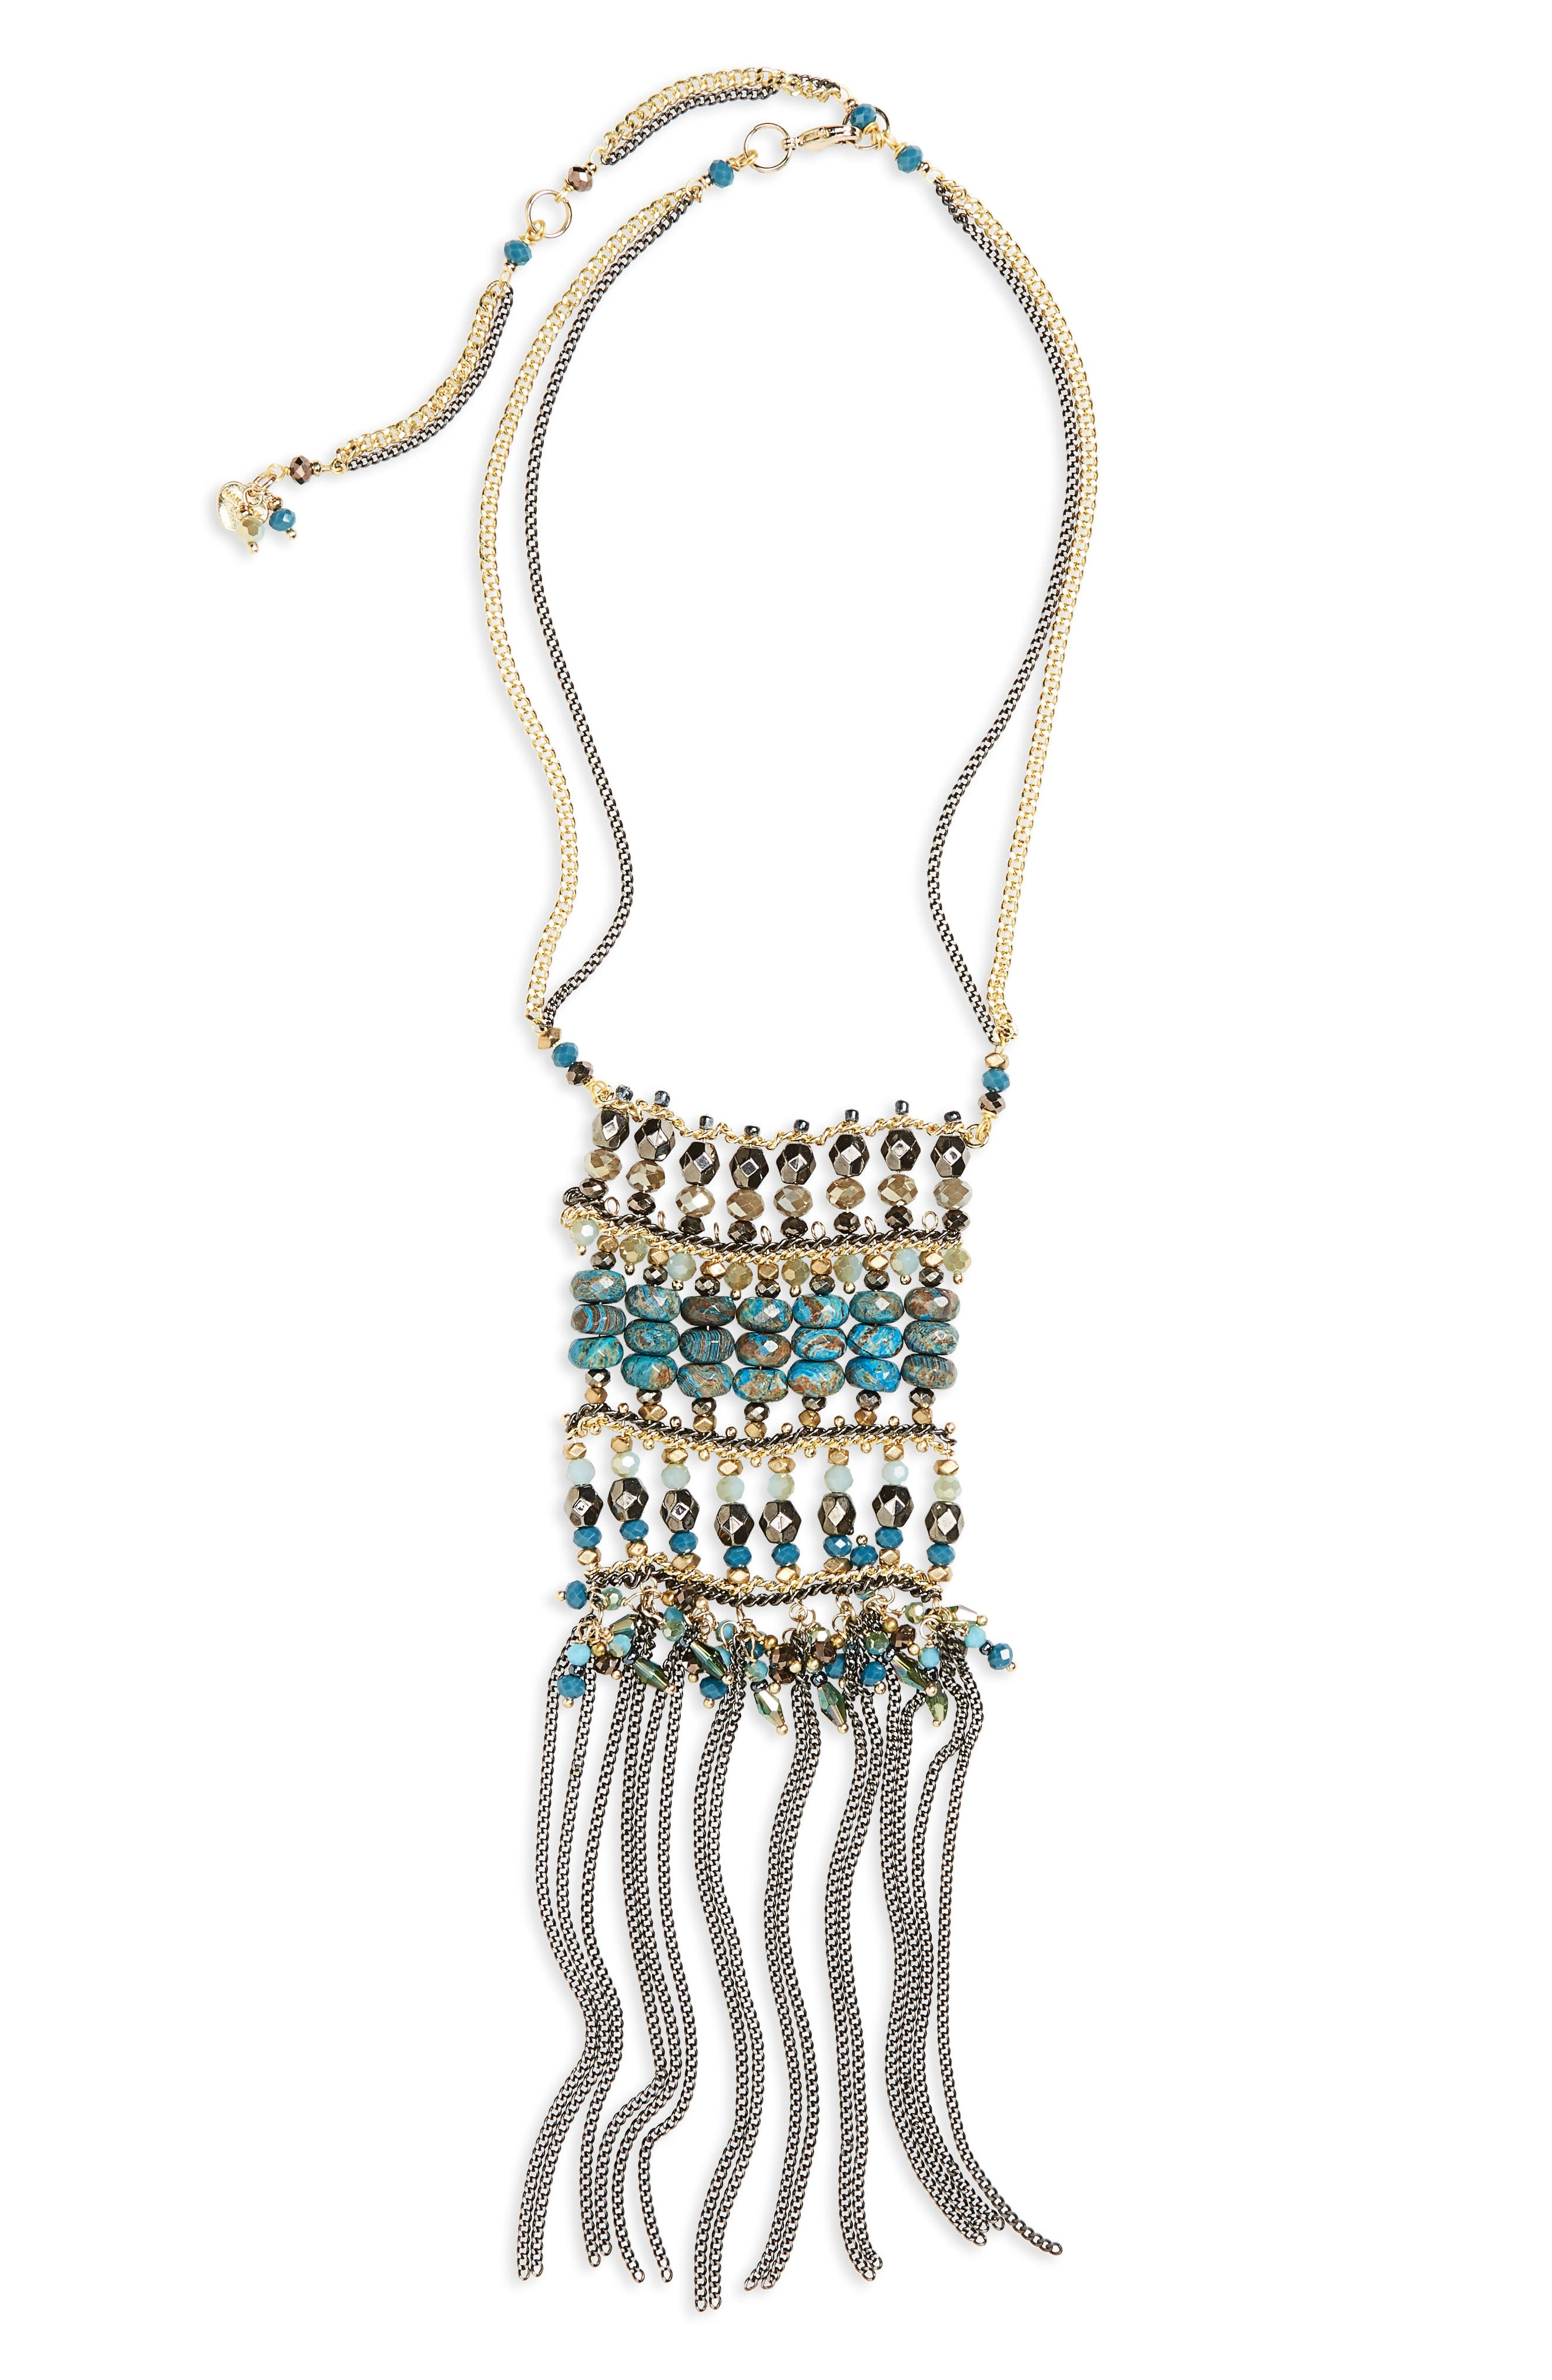 Main Image - Nakamol Design Crystal Chain Necklace